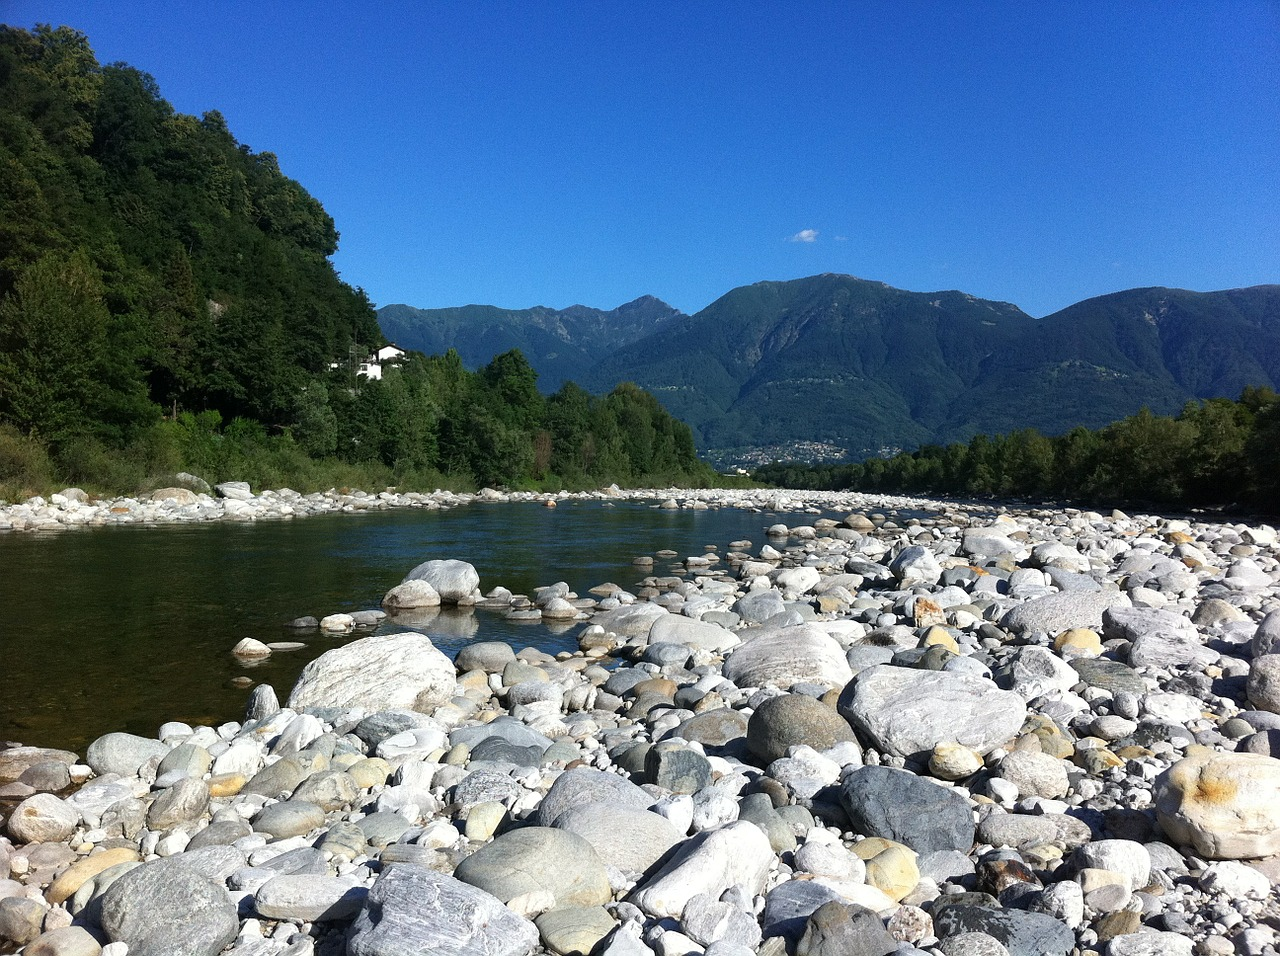 ticino,river,stones,mountains,alpine,free pictures, free photos, free images, royalty free, free illustrations